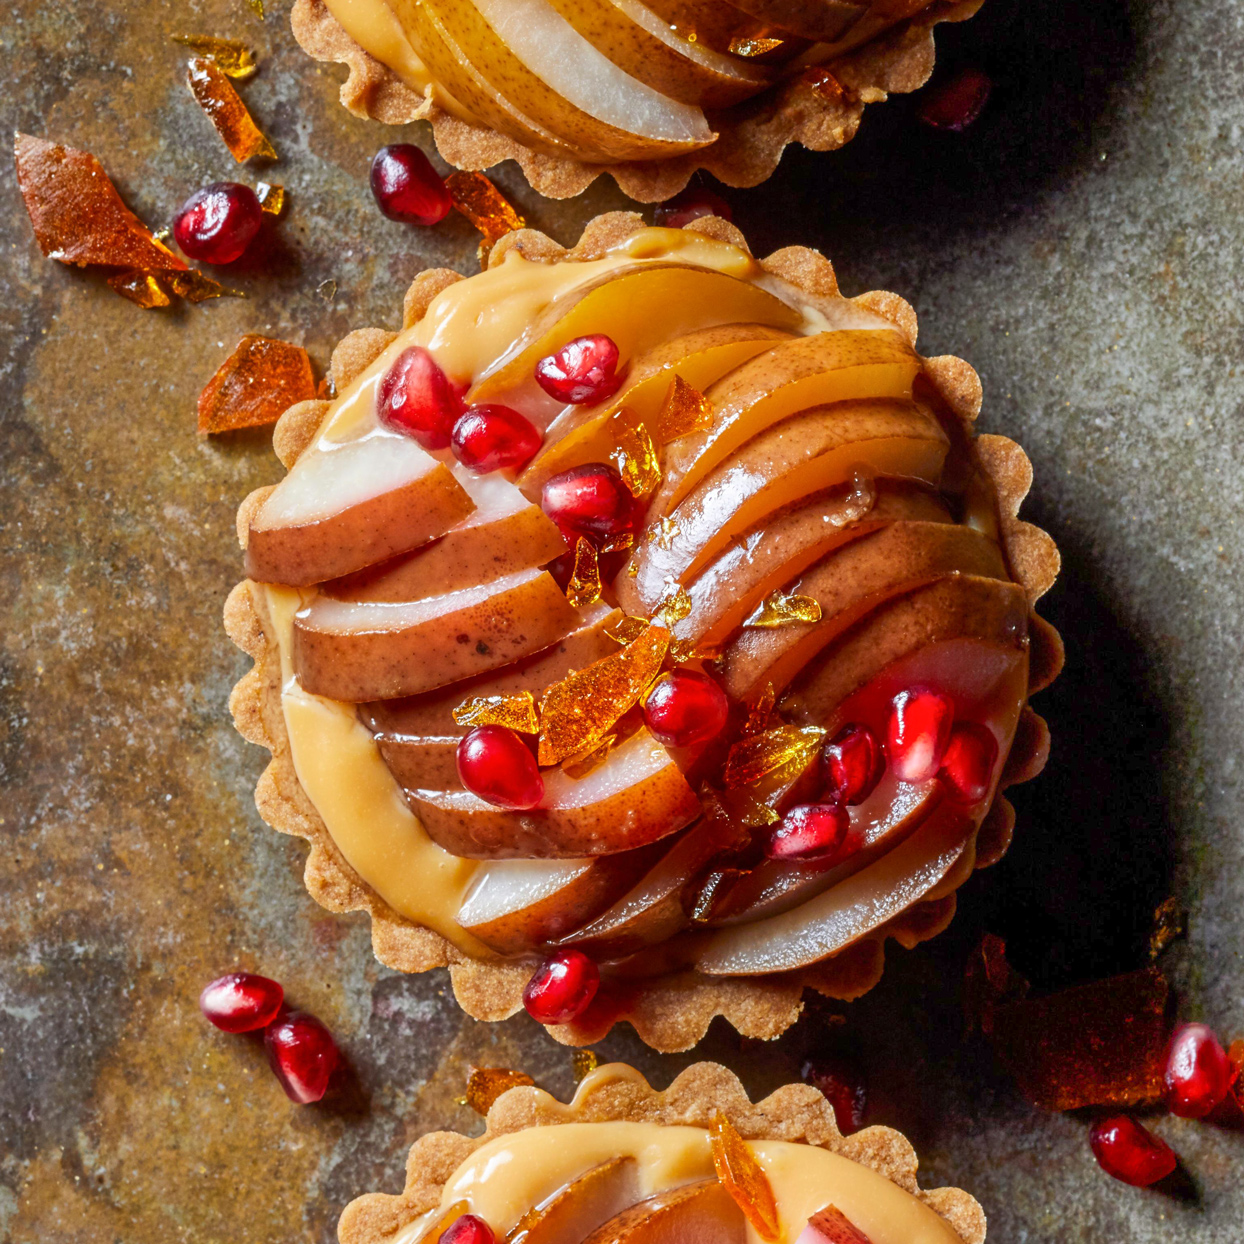 Pear Tarts with Caramelized Pastry Cream